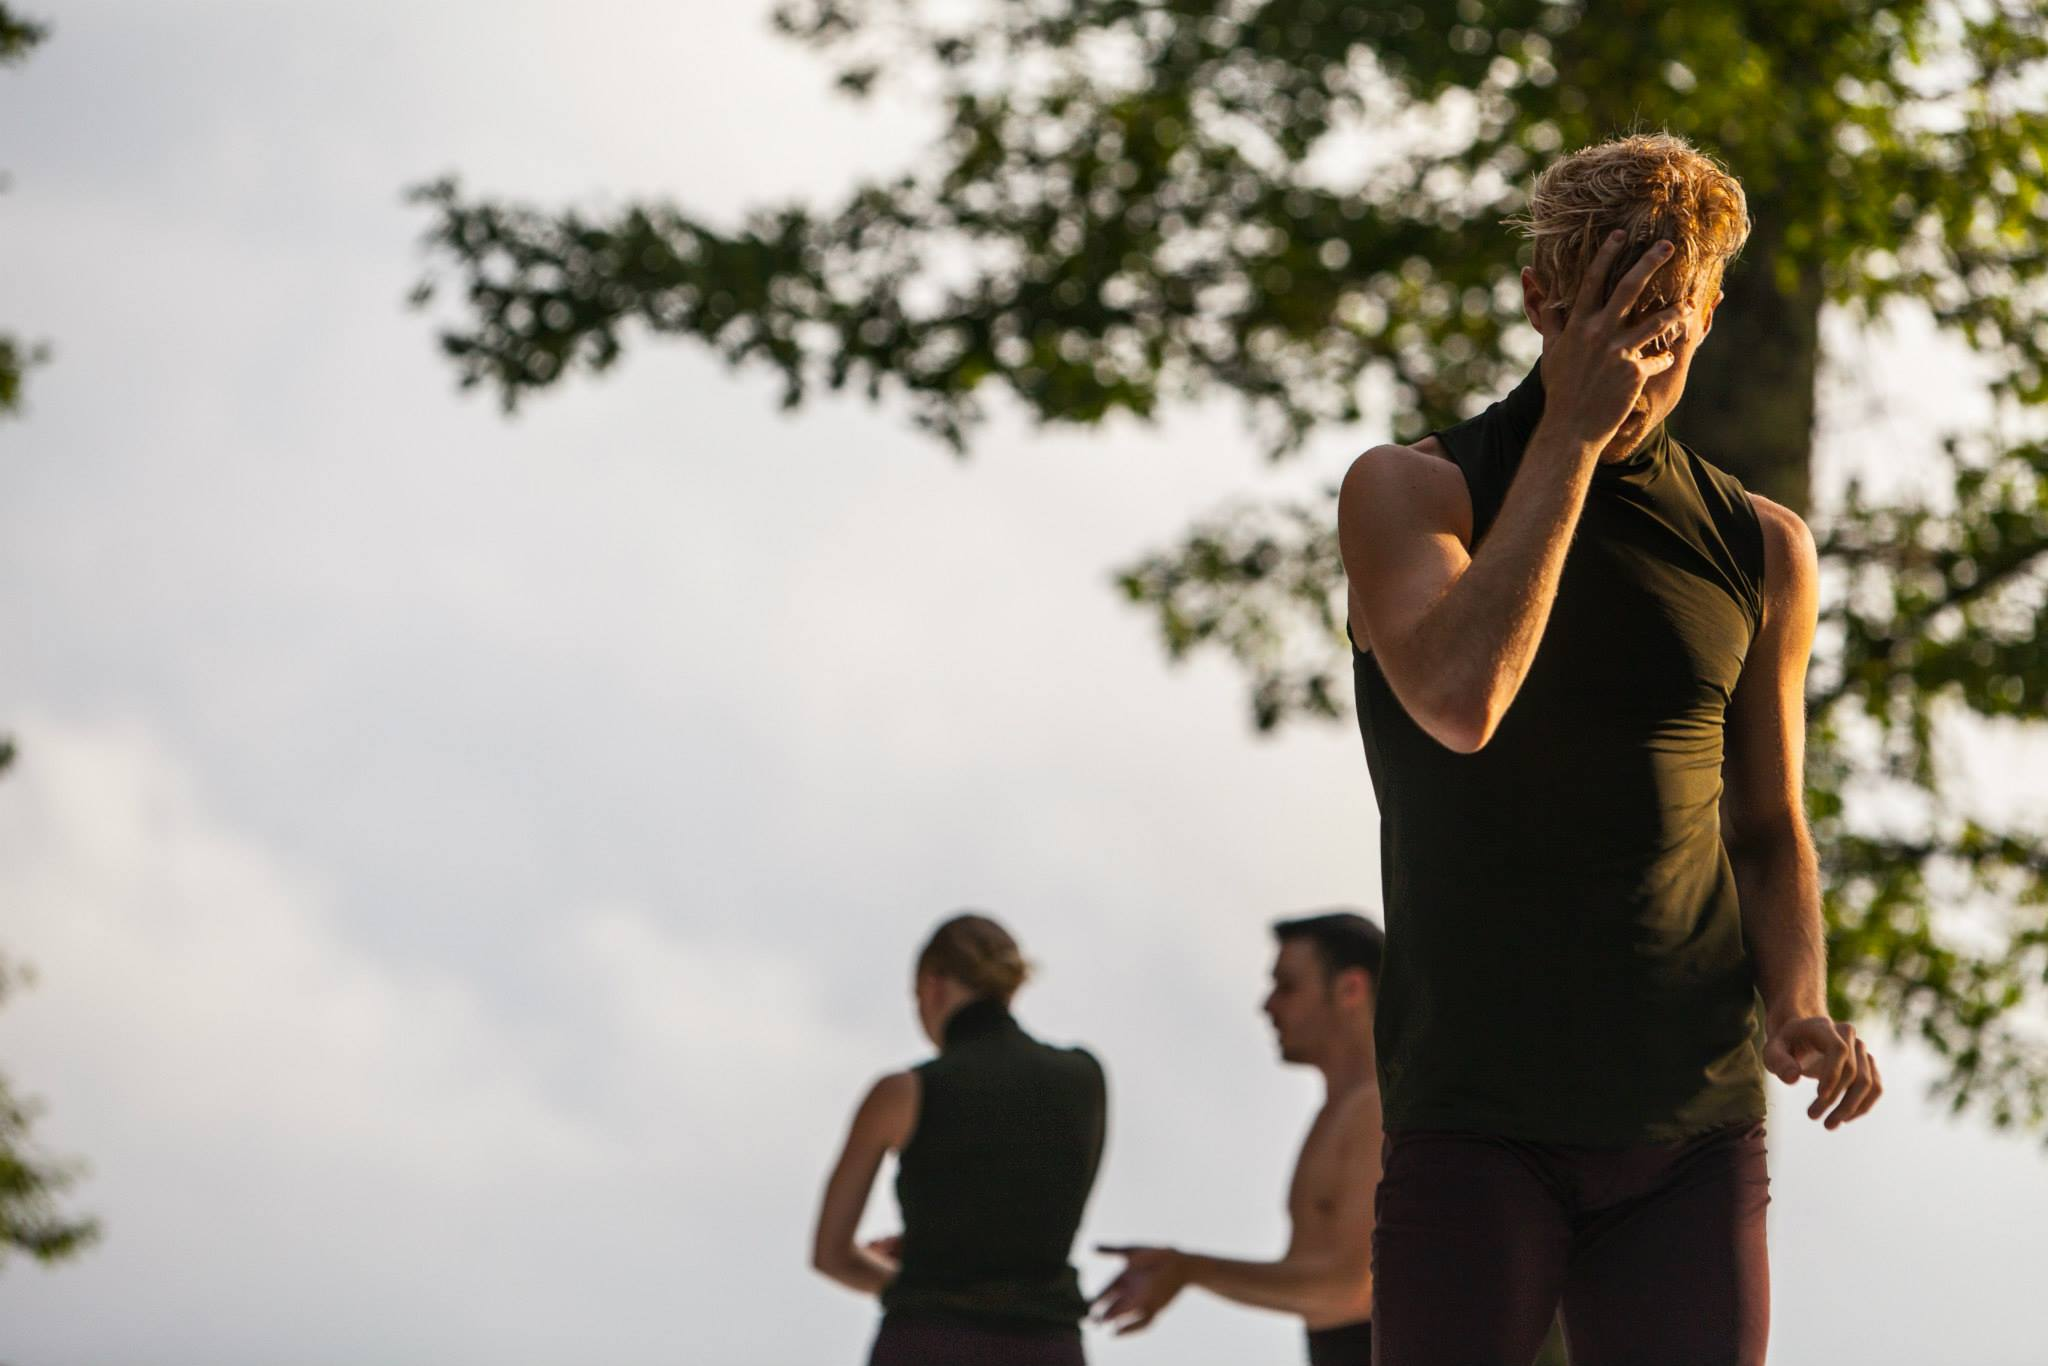 photo: Charlie Winter  Mettin Movement at Jacob's Pillow July 2015